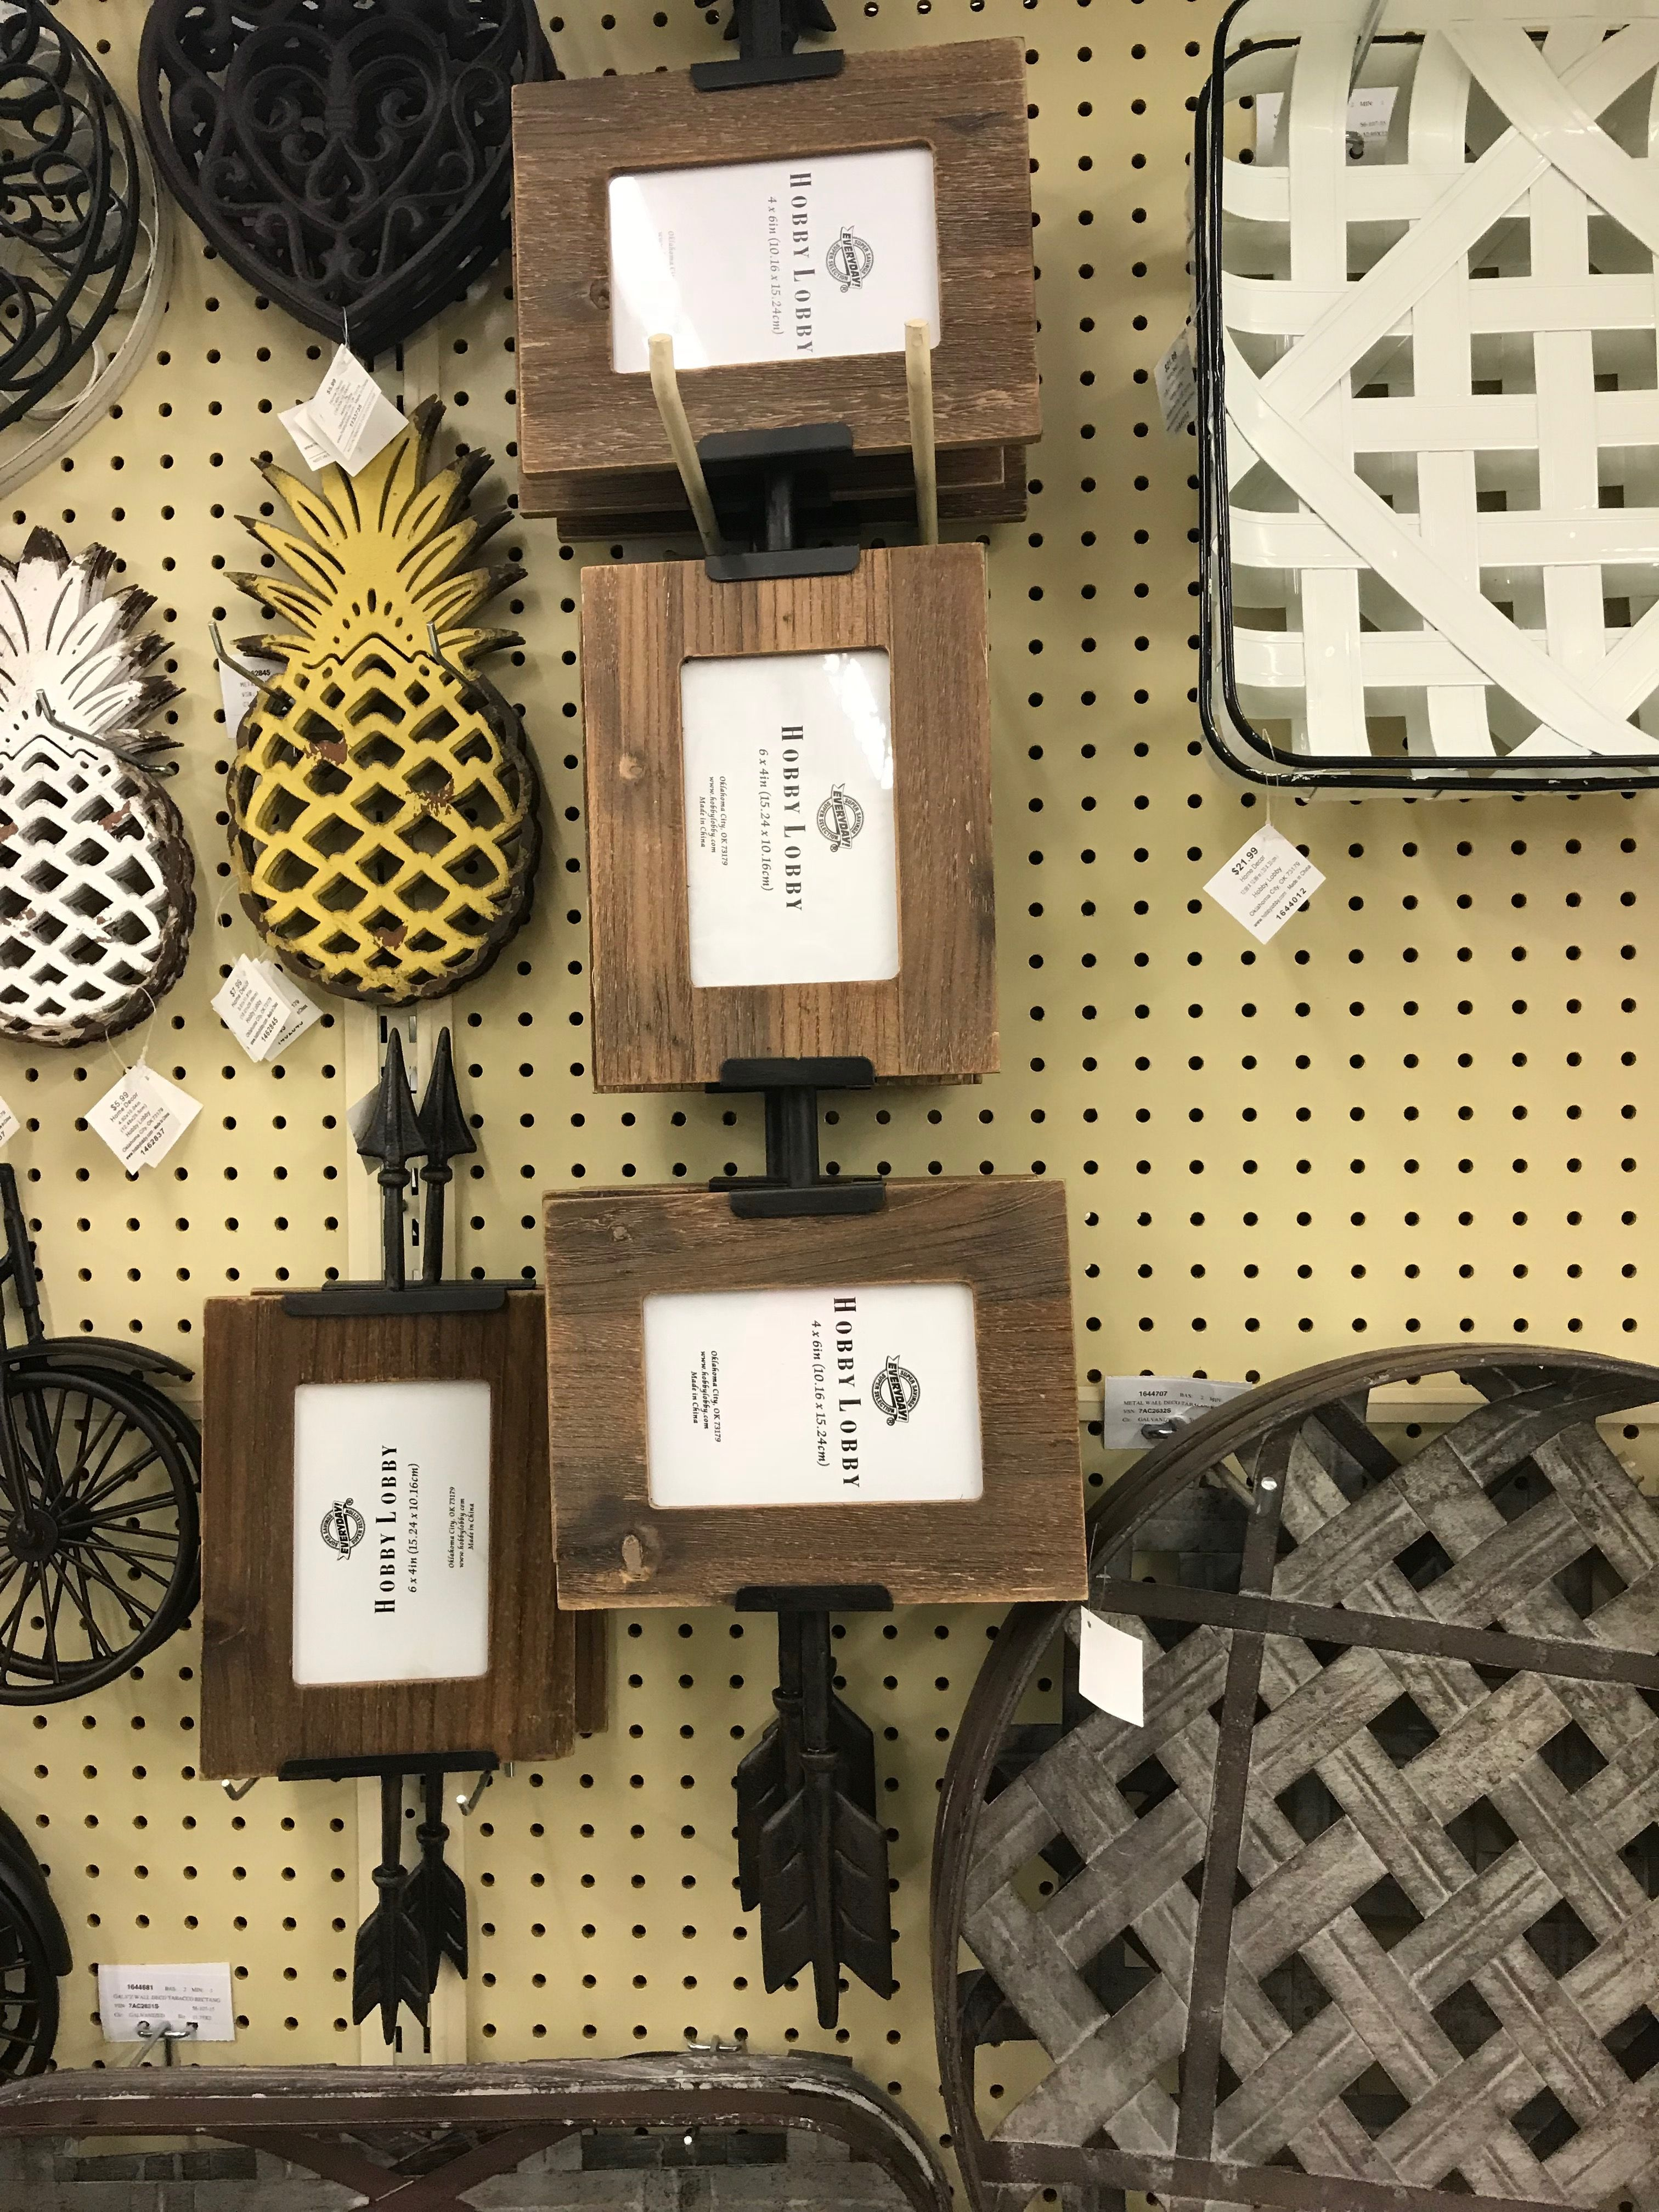 Pin by Dawn Schantz on Decor (indoor) Hobby lobby, Decor